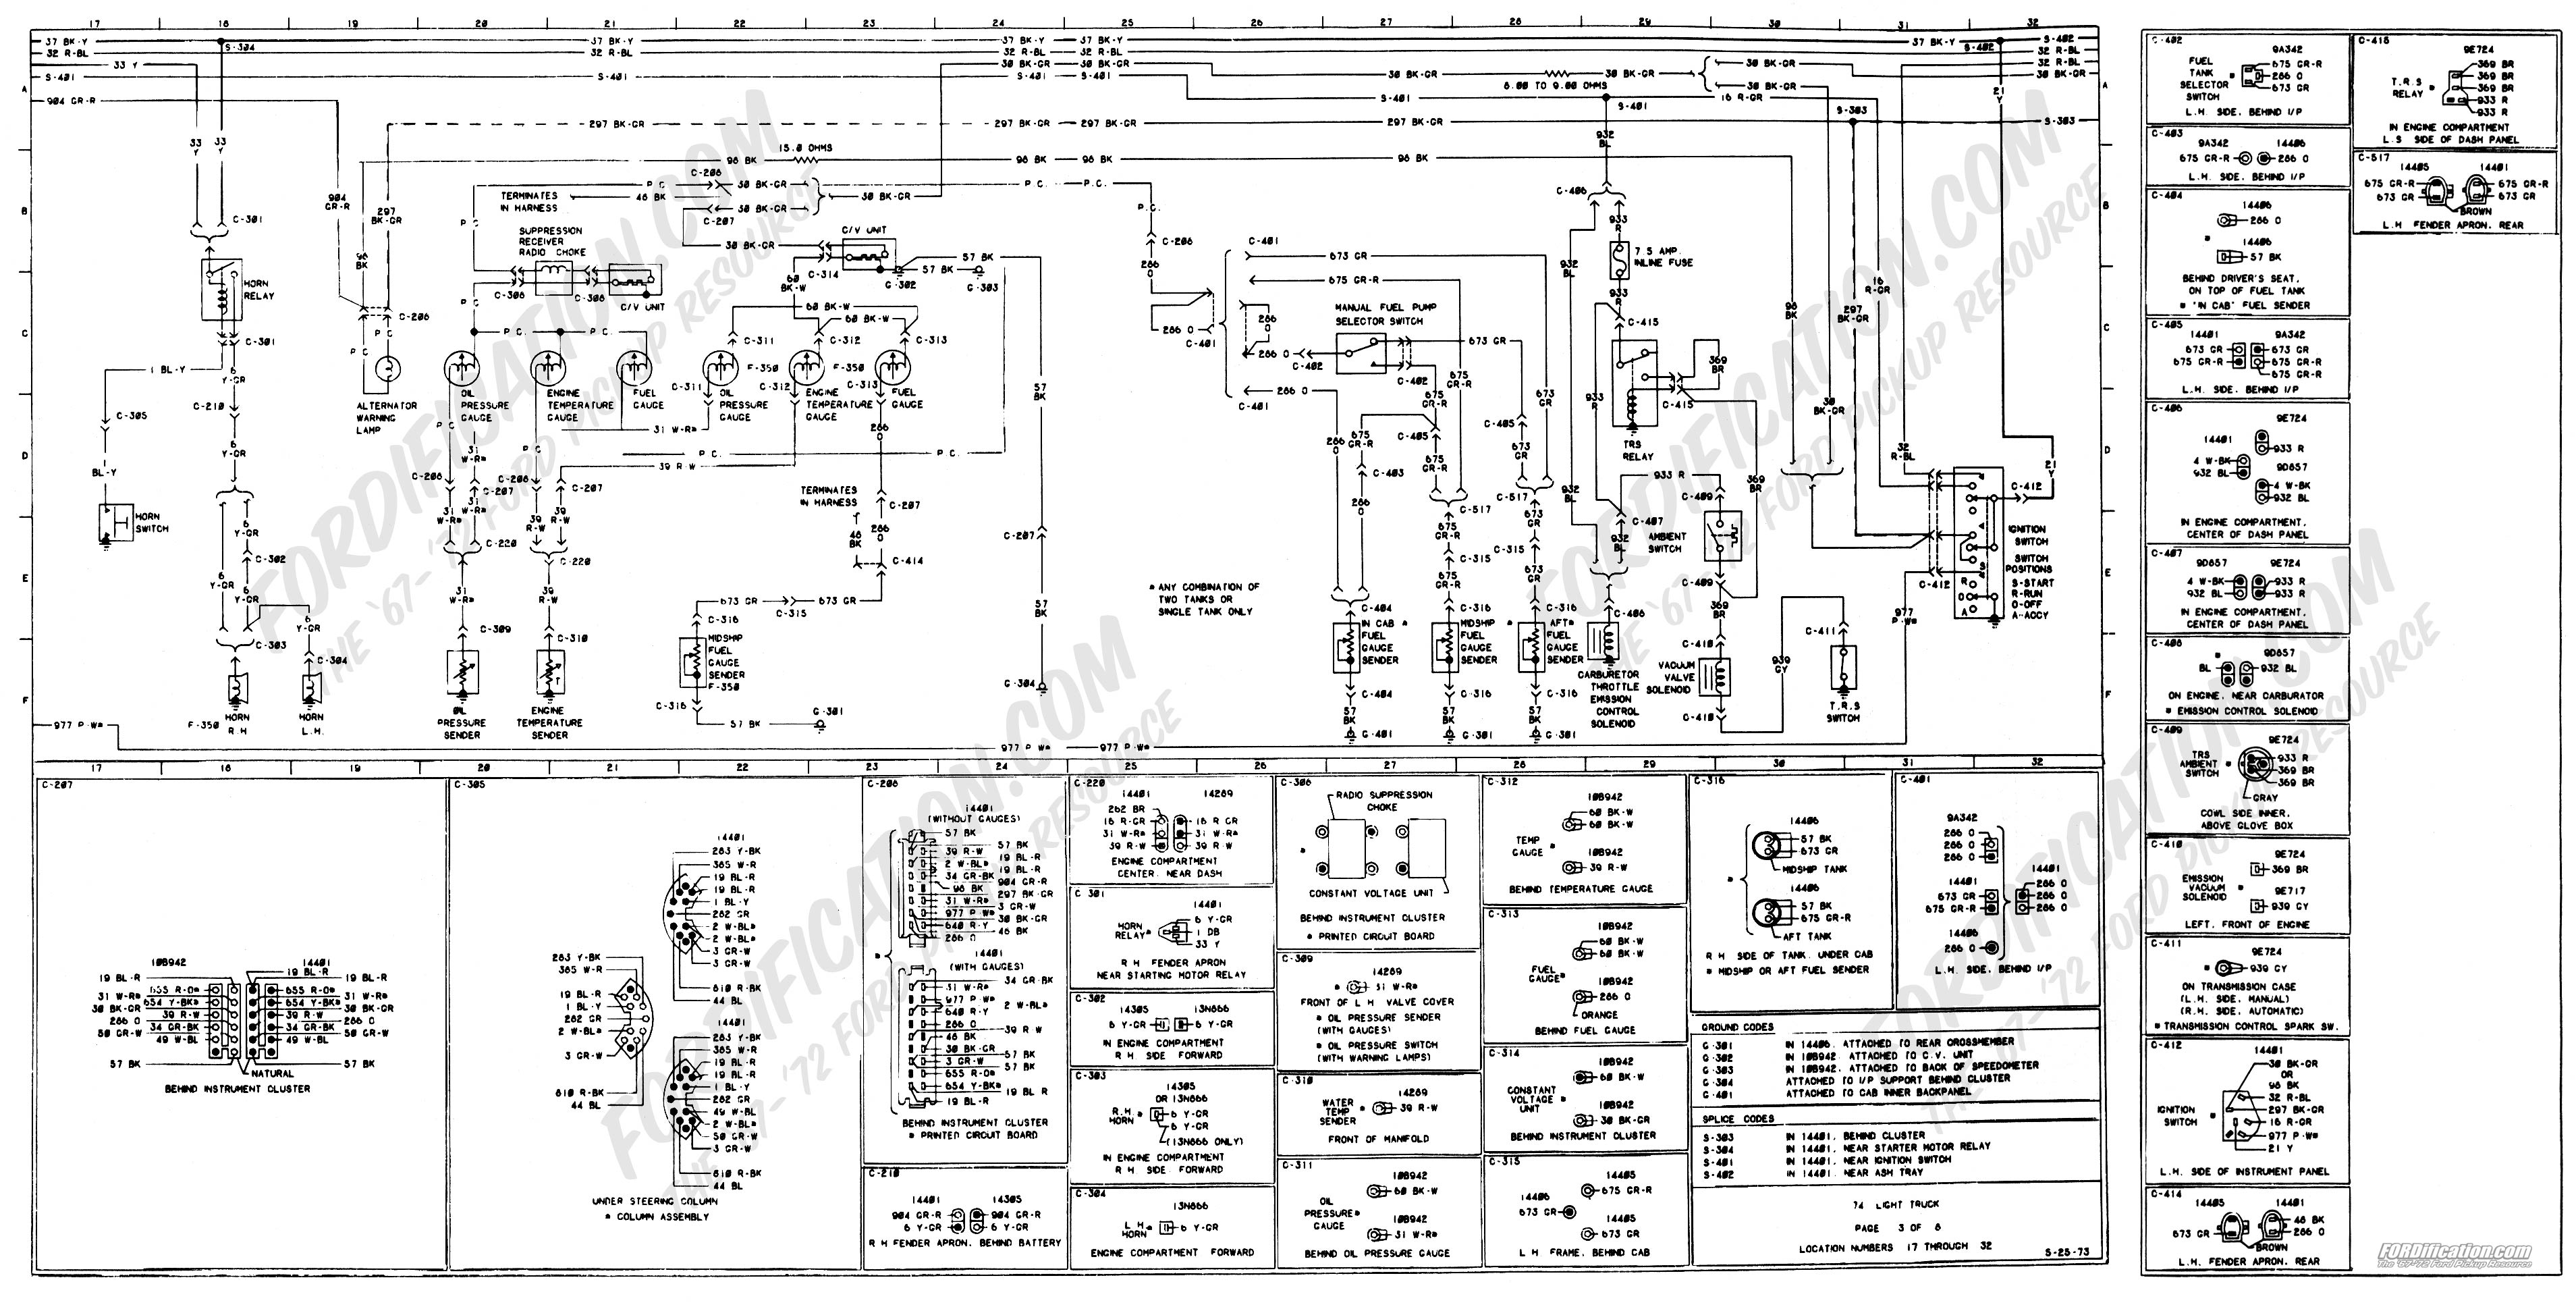 1973 1979 ford truck wiring diagrams schematics fordification net rh fordification net 1985 ford f250 diesel wiring diagram 1989 ford f250 diesel wiring diagram